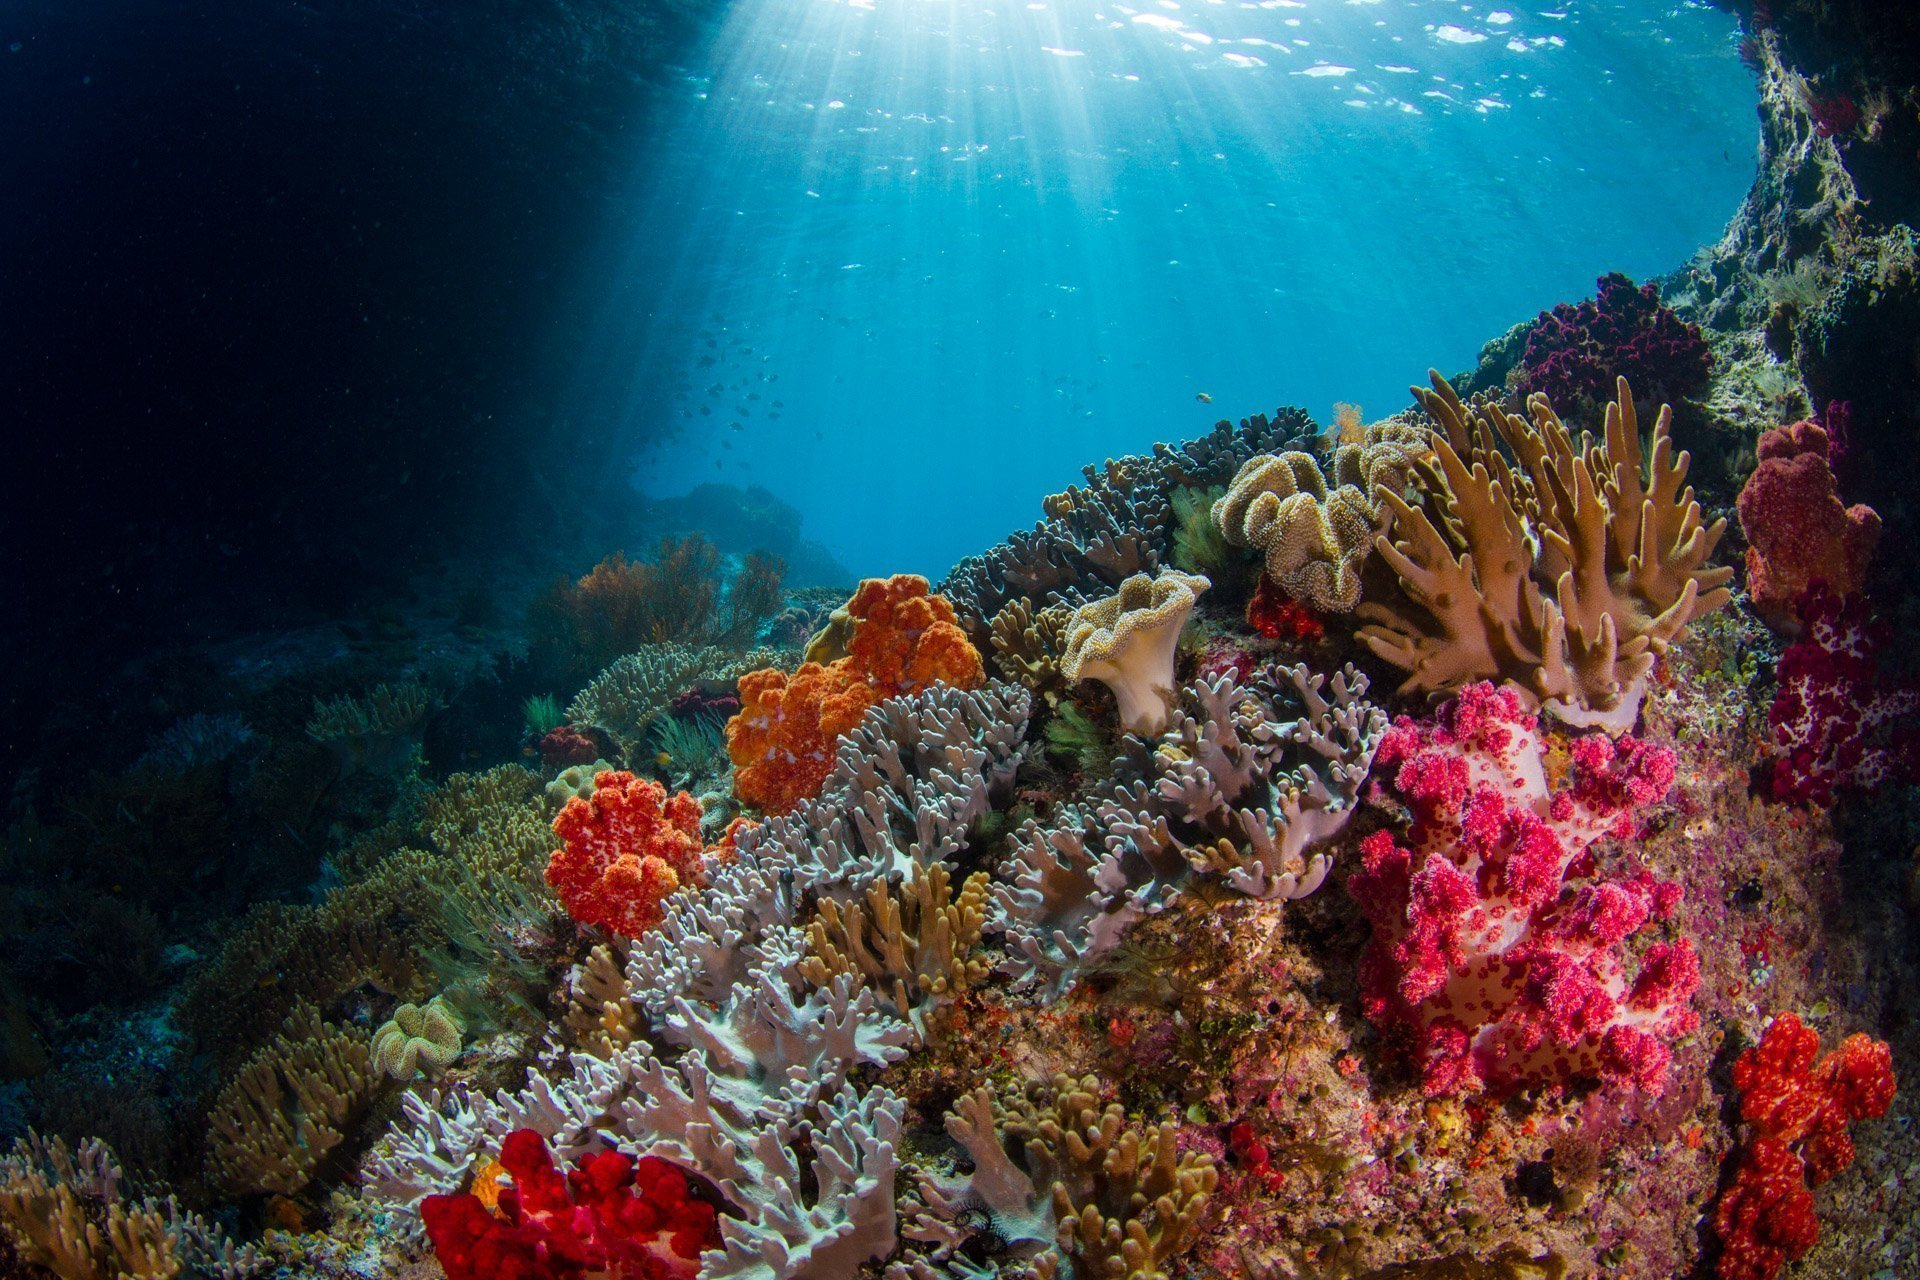 beautiful coral scene with light shinning down